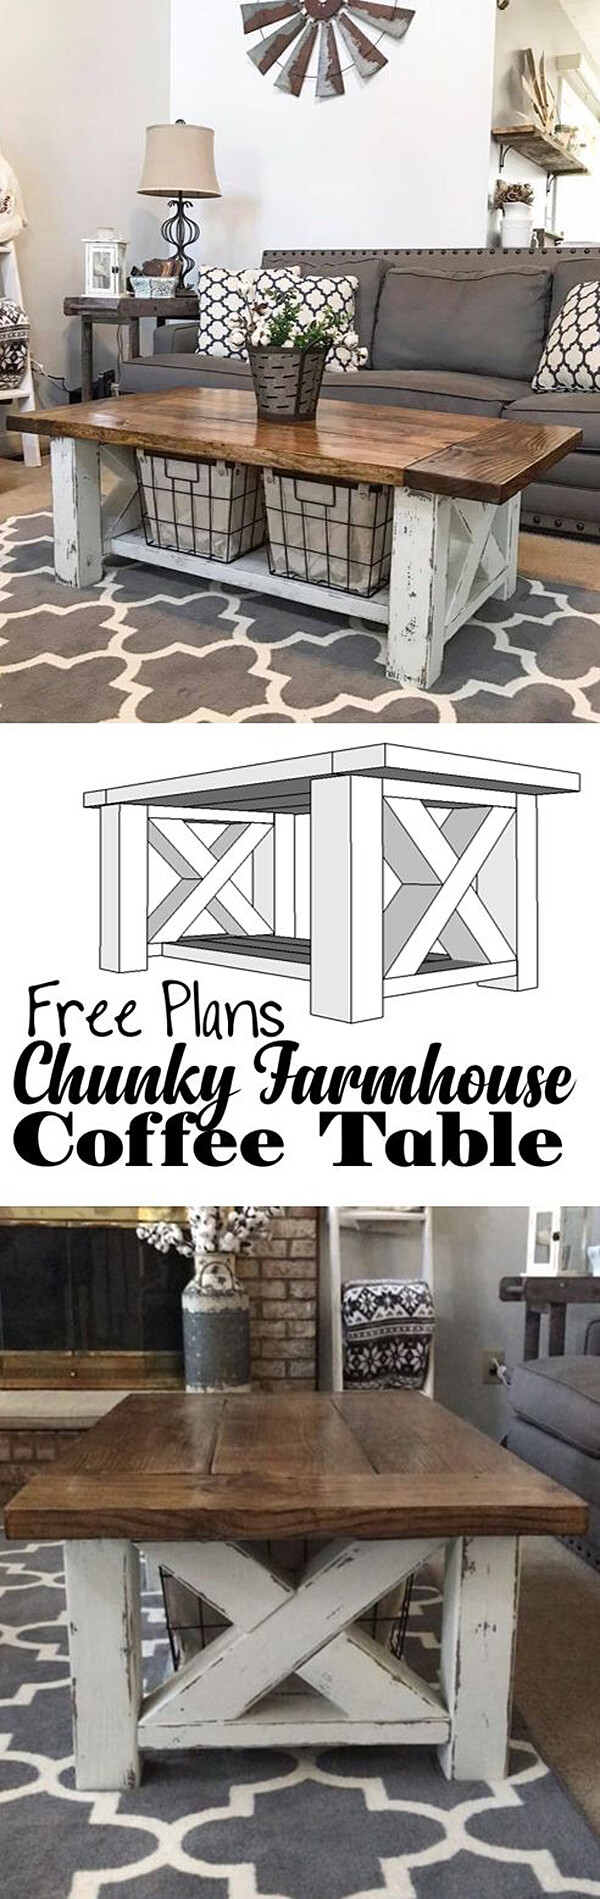 best diy farmhouse coffee table ideas and designs for homebnc end double cross chunky farm fresh design furniture style pet crates living room size stanley american modern bedroom